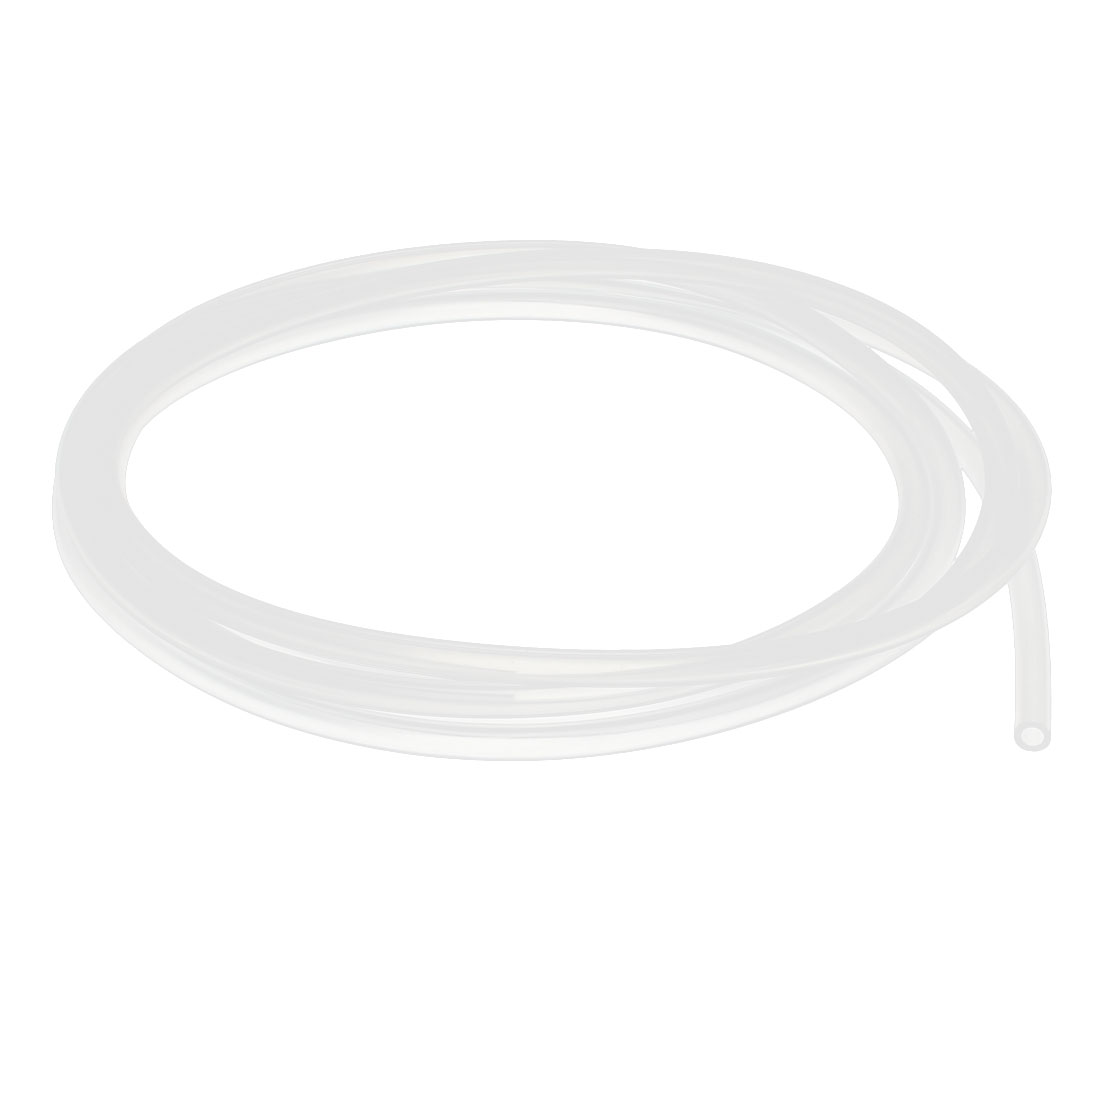 3mm x 5mm Silicone Vacuum Food Grade Translucent Tube Beer Water Air Pump Hose Pipe 2 Meters Long